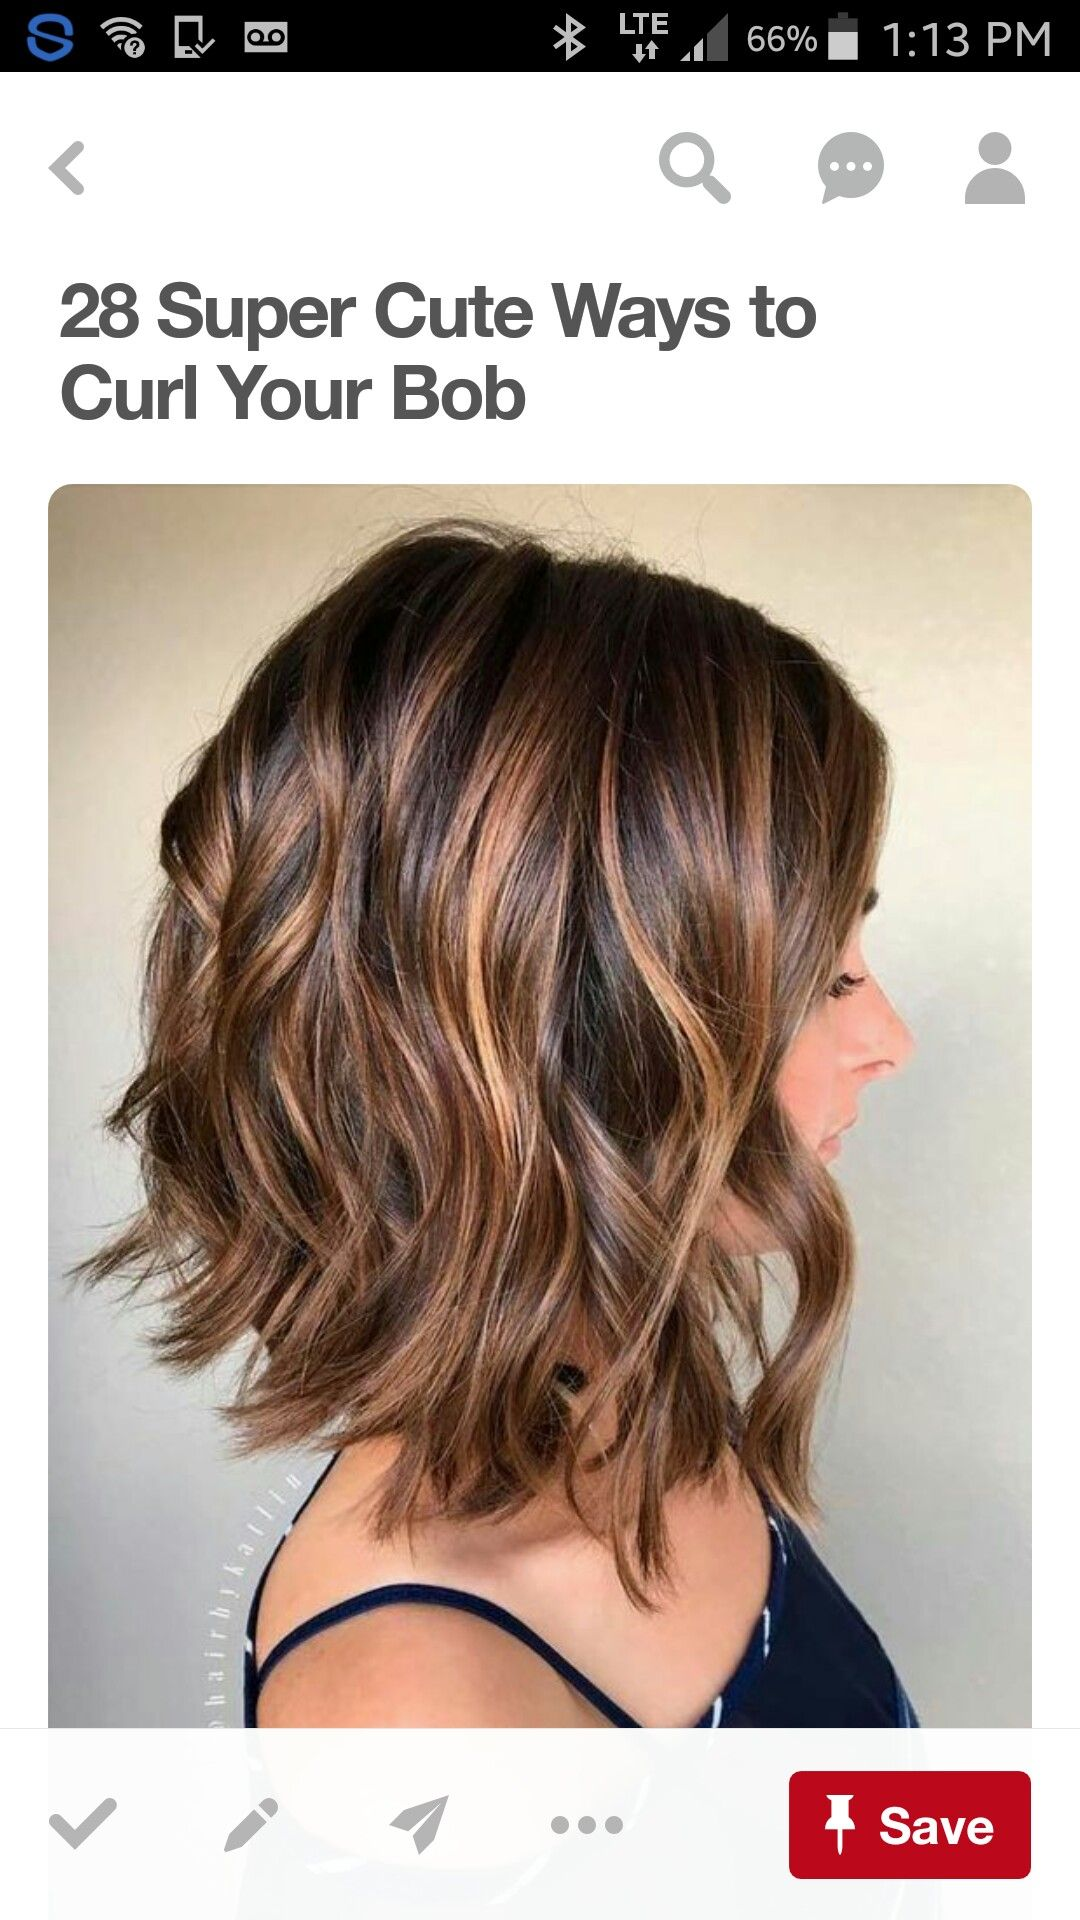 Pin by ilin guerra on hairstyles pinterest hair style haircuts